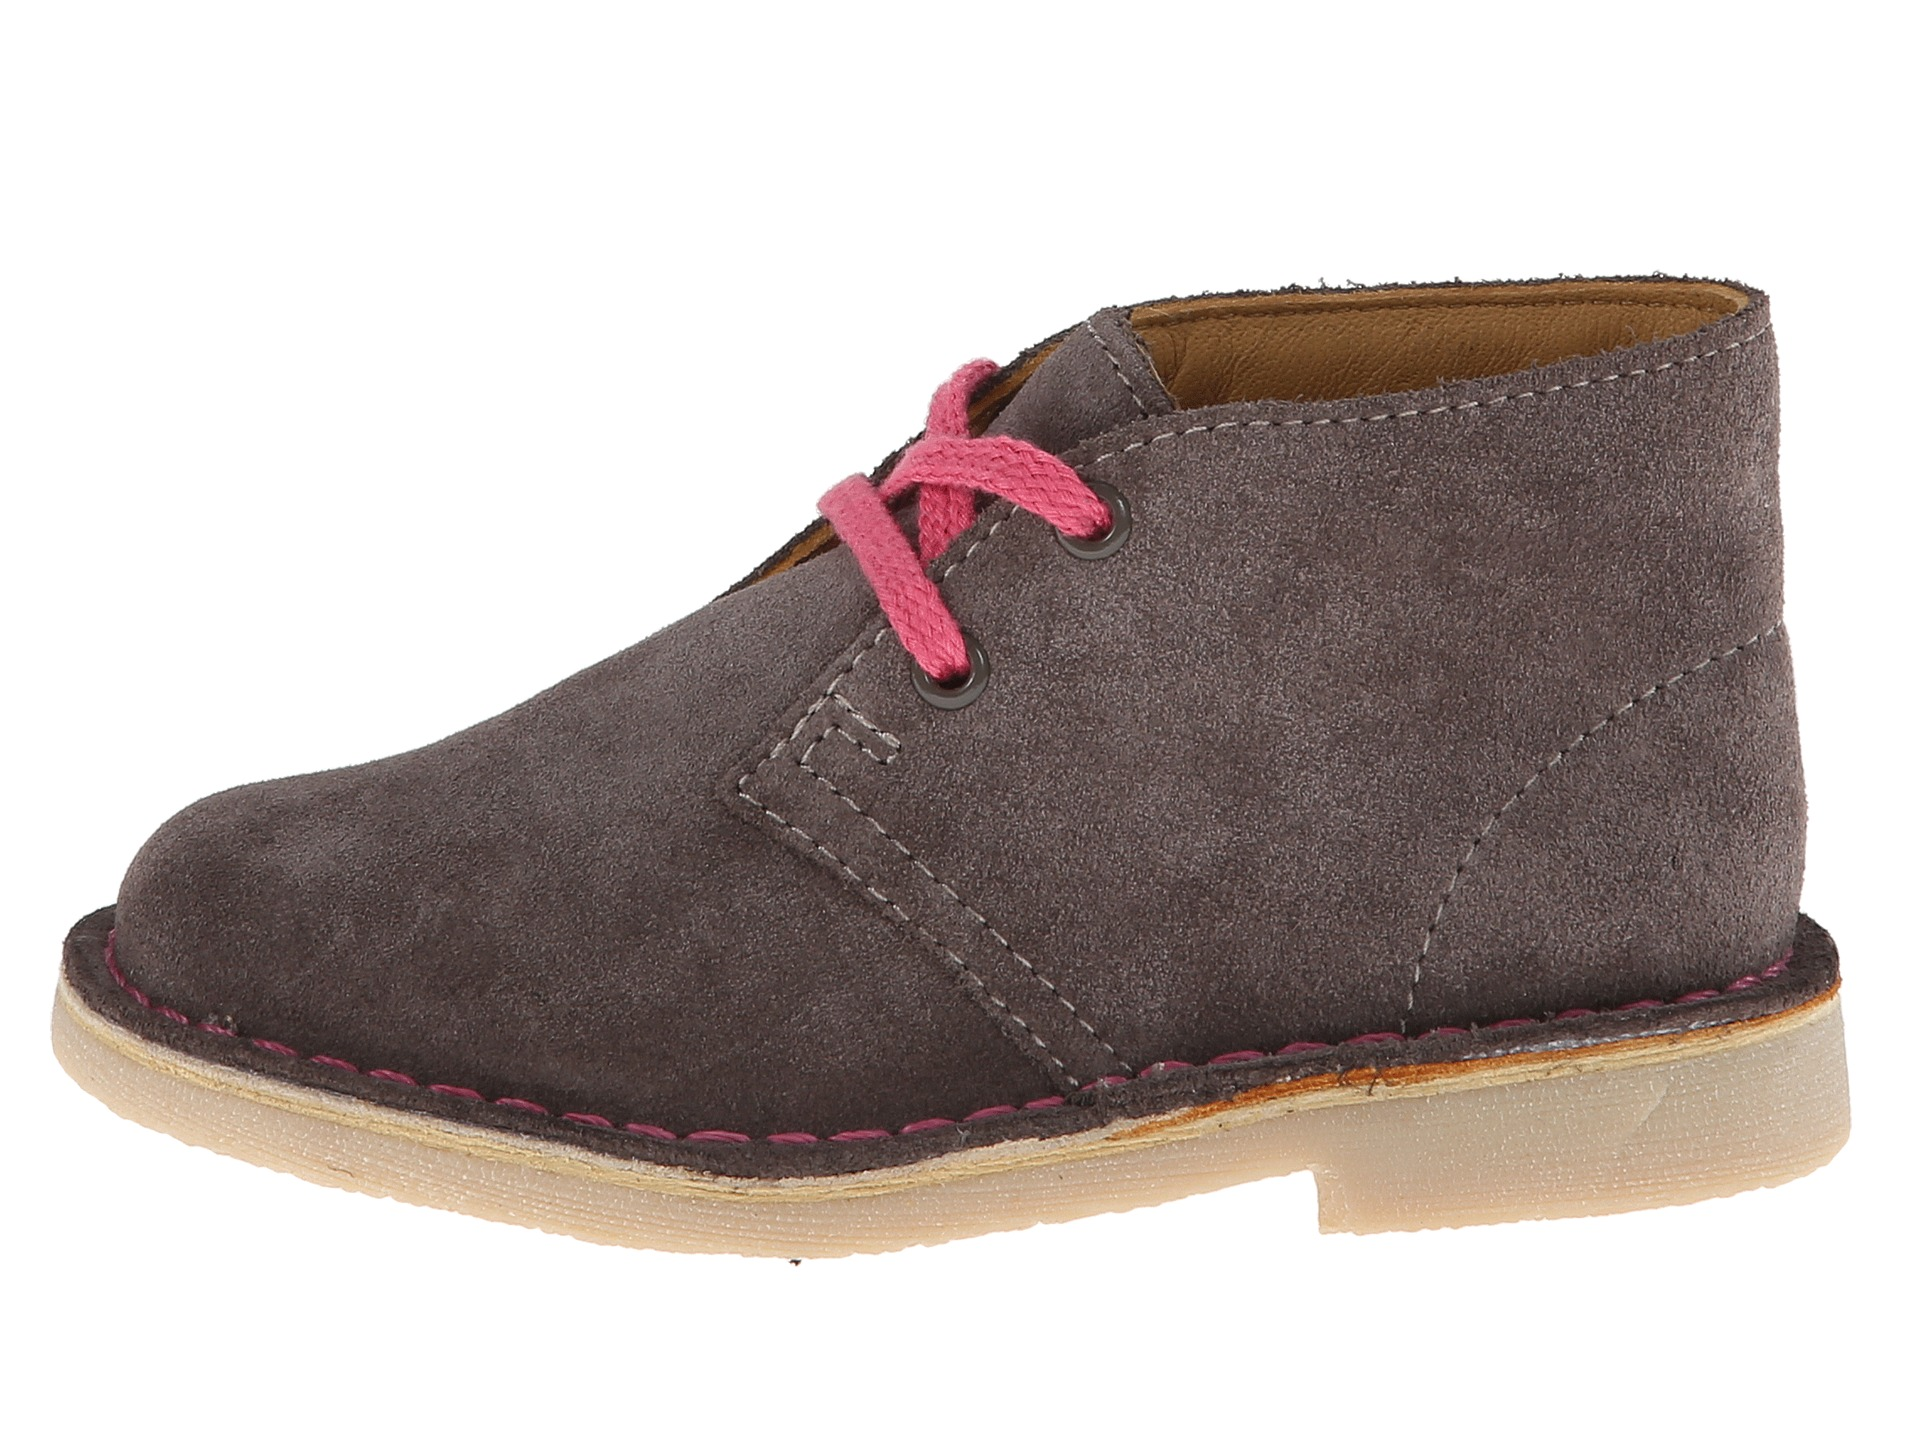 Buy Clarks from Ireland's easiest online shoe shop. Free delivery both ways, every time. Great prices, and quick delivery to your home or office.